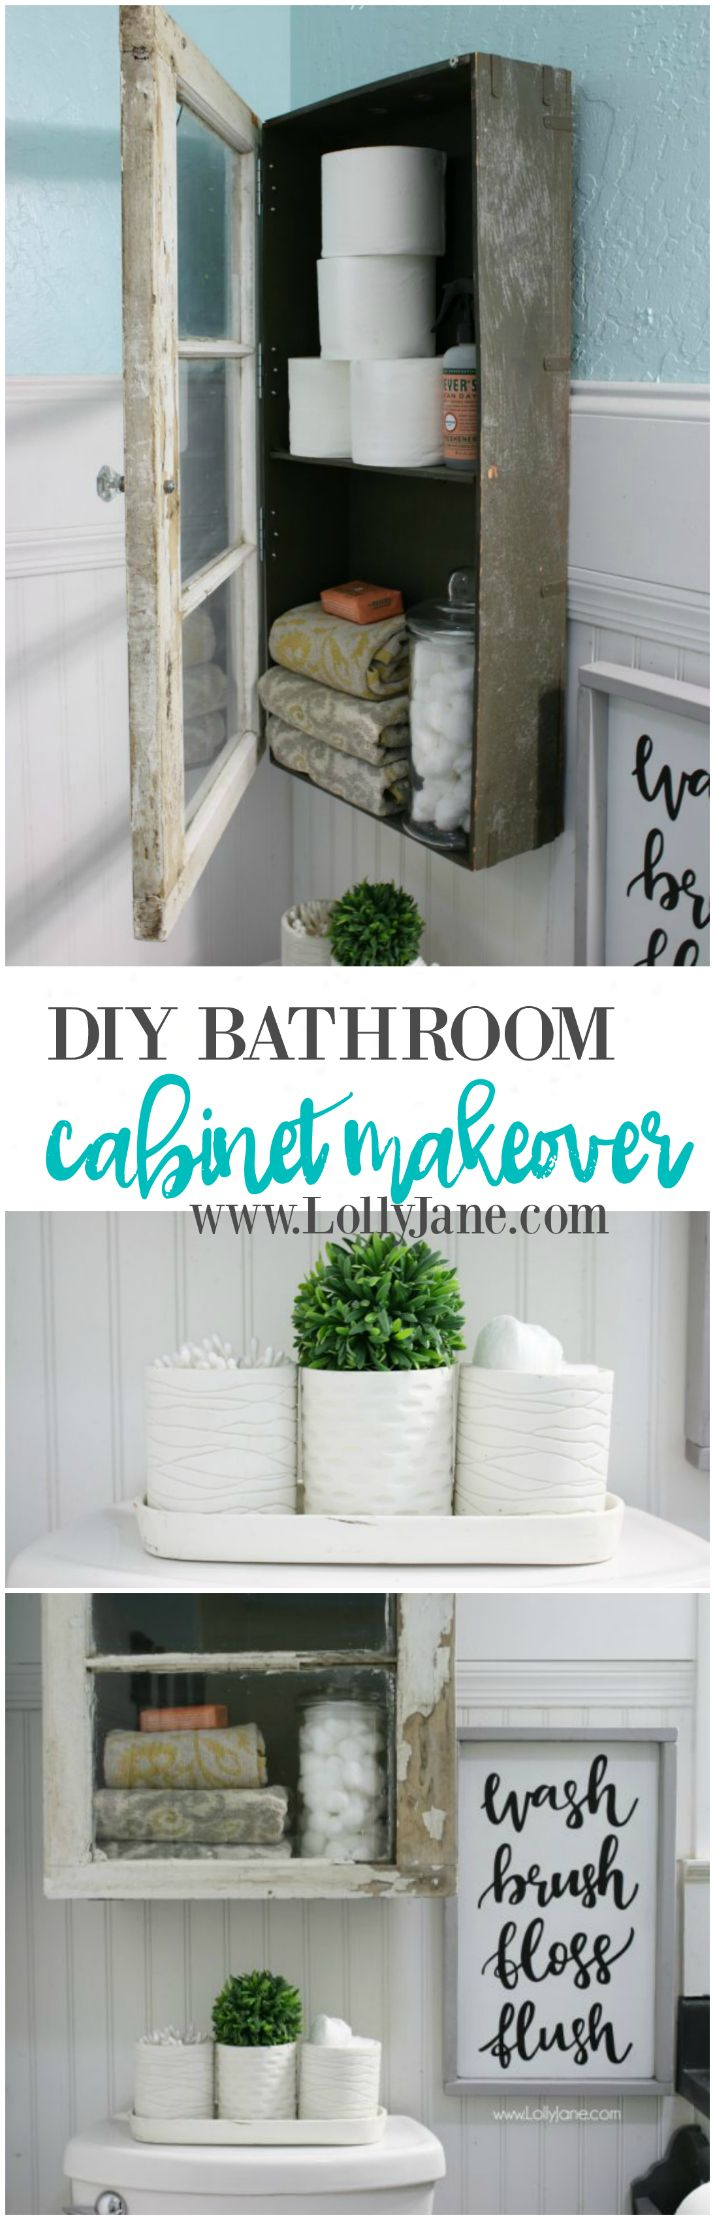 You've got to check out this diy bathroom cabinet! It's made from an old trunk lid and window!? So dang cute! Great makeover idea! Love these bathroom storage solutions and bathroom accessories too!